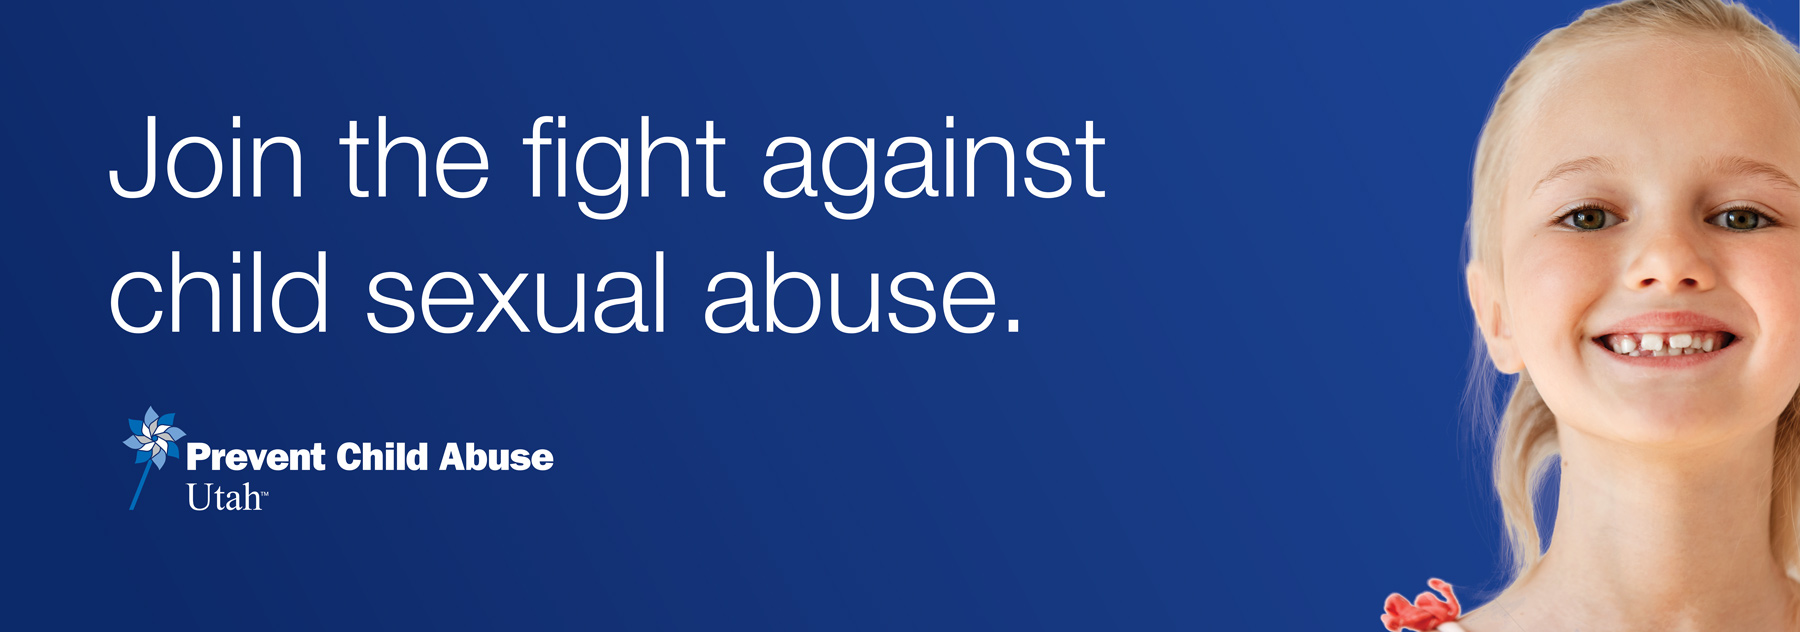 Join the fight against child sexual abuse